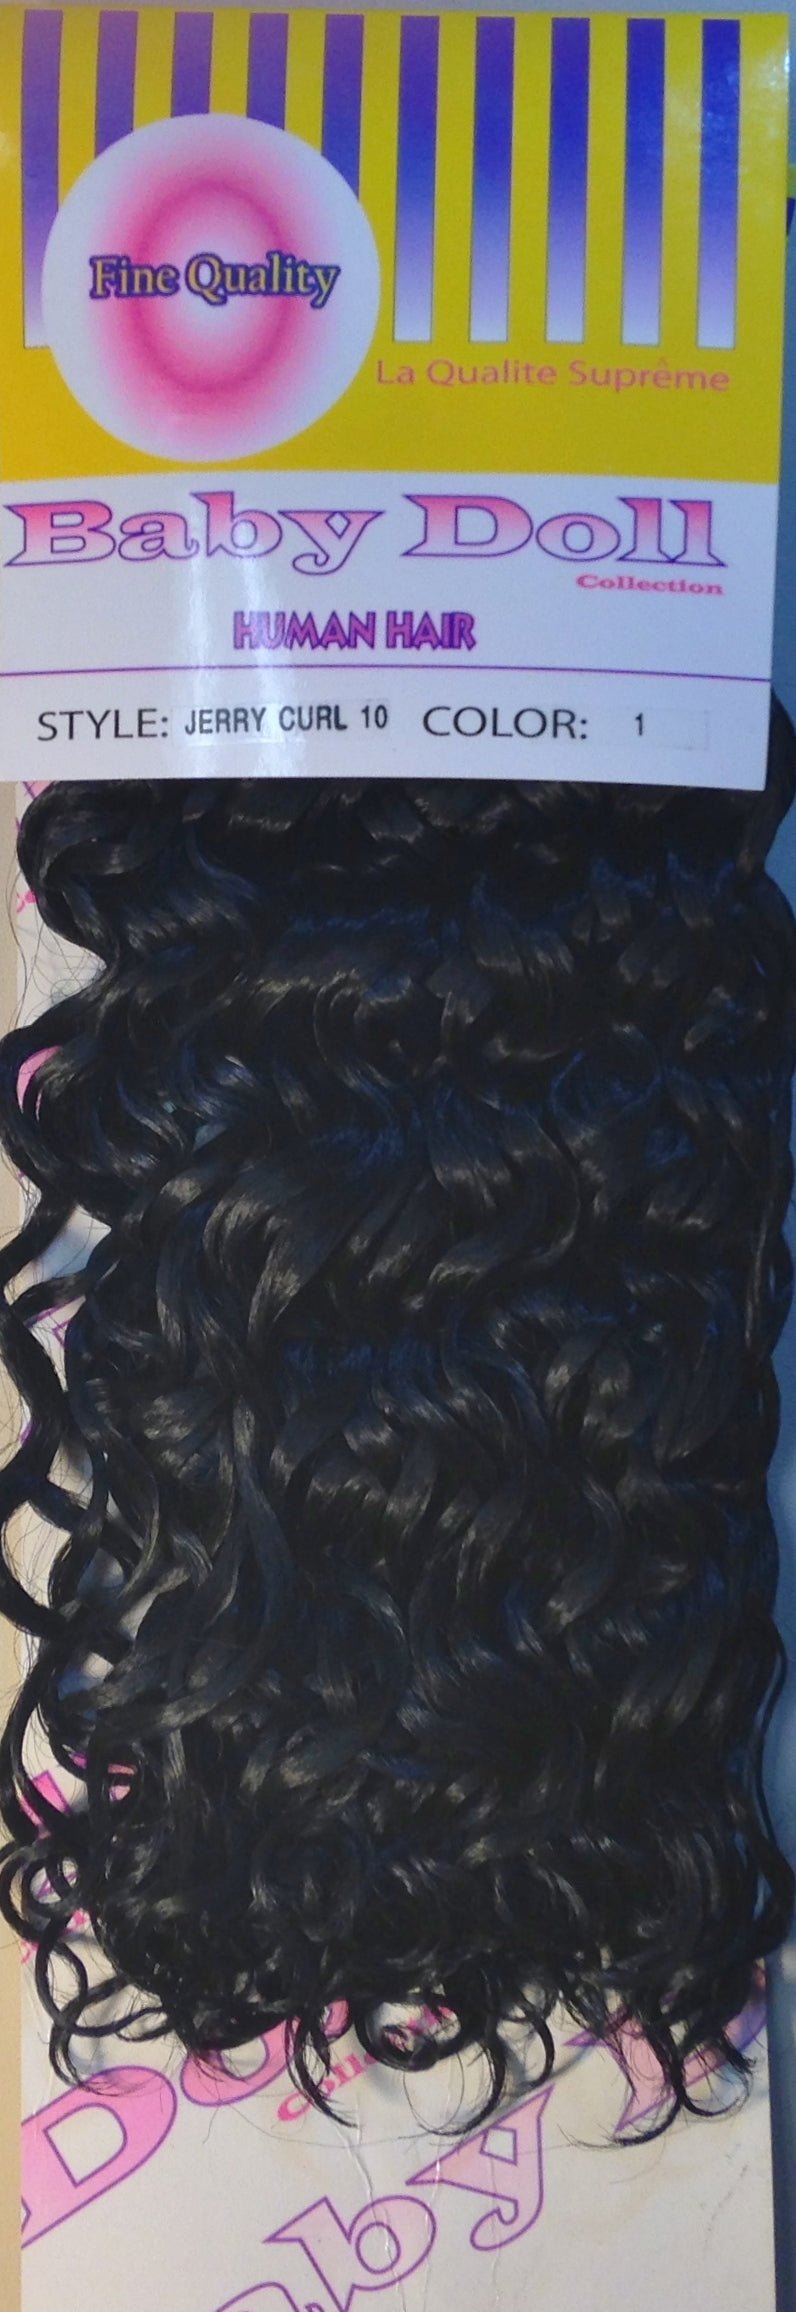 Baby doll jerry curl 10